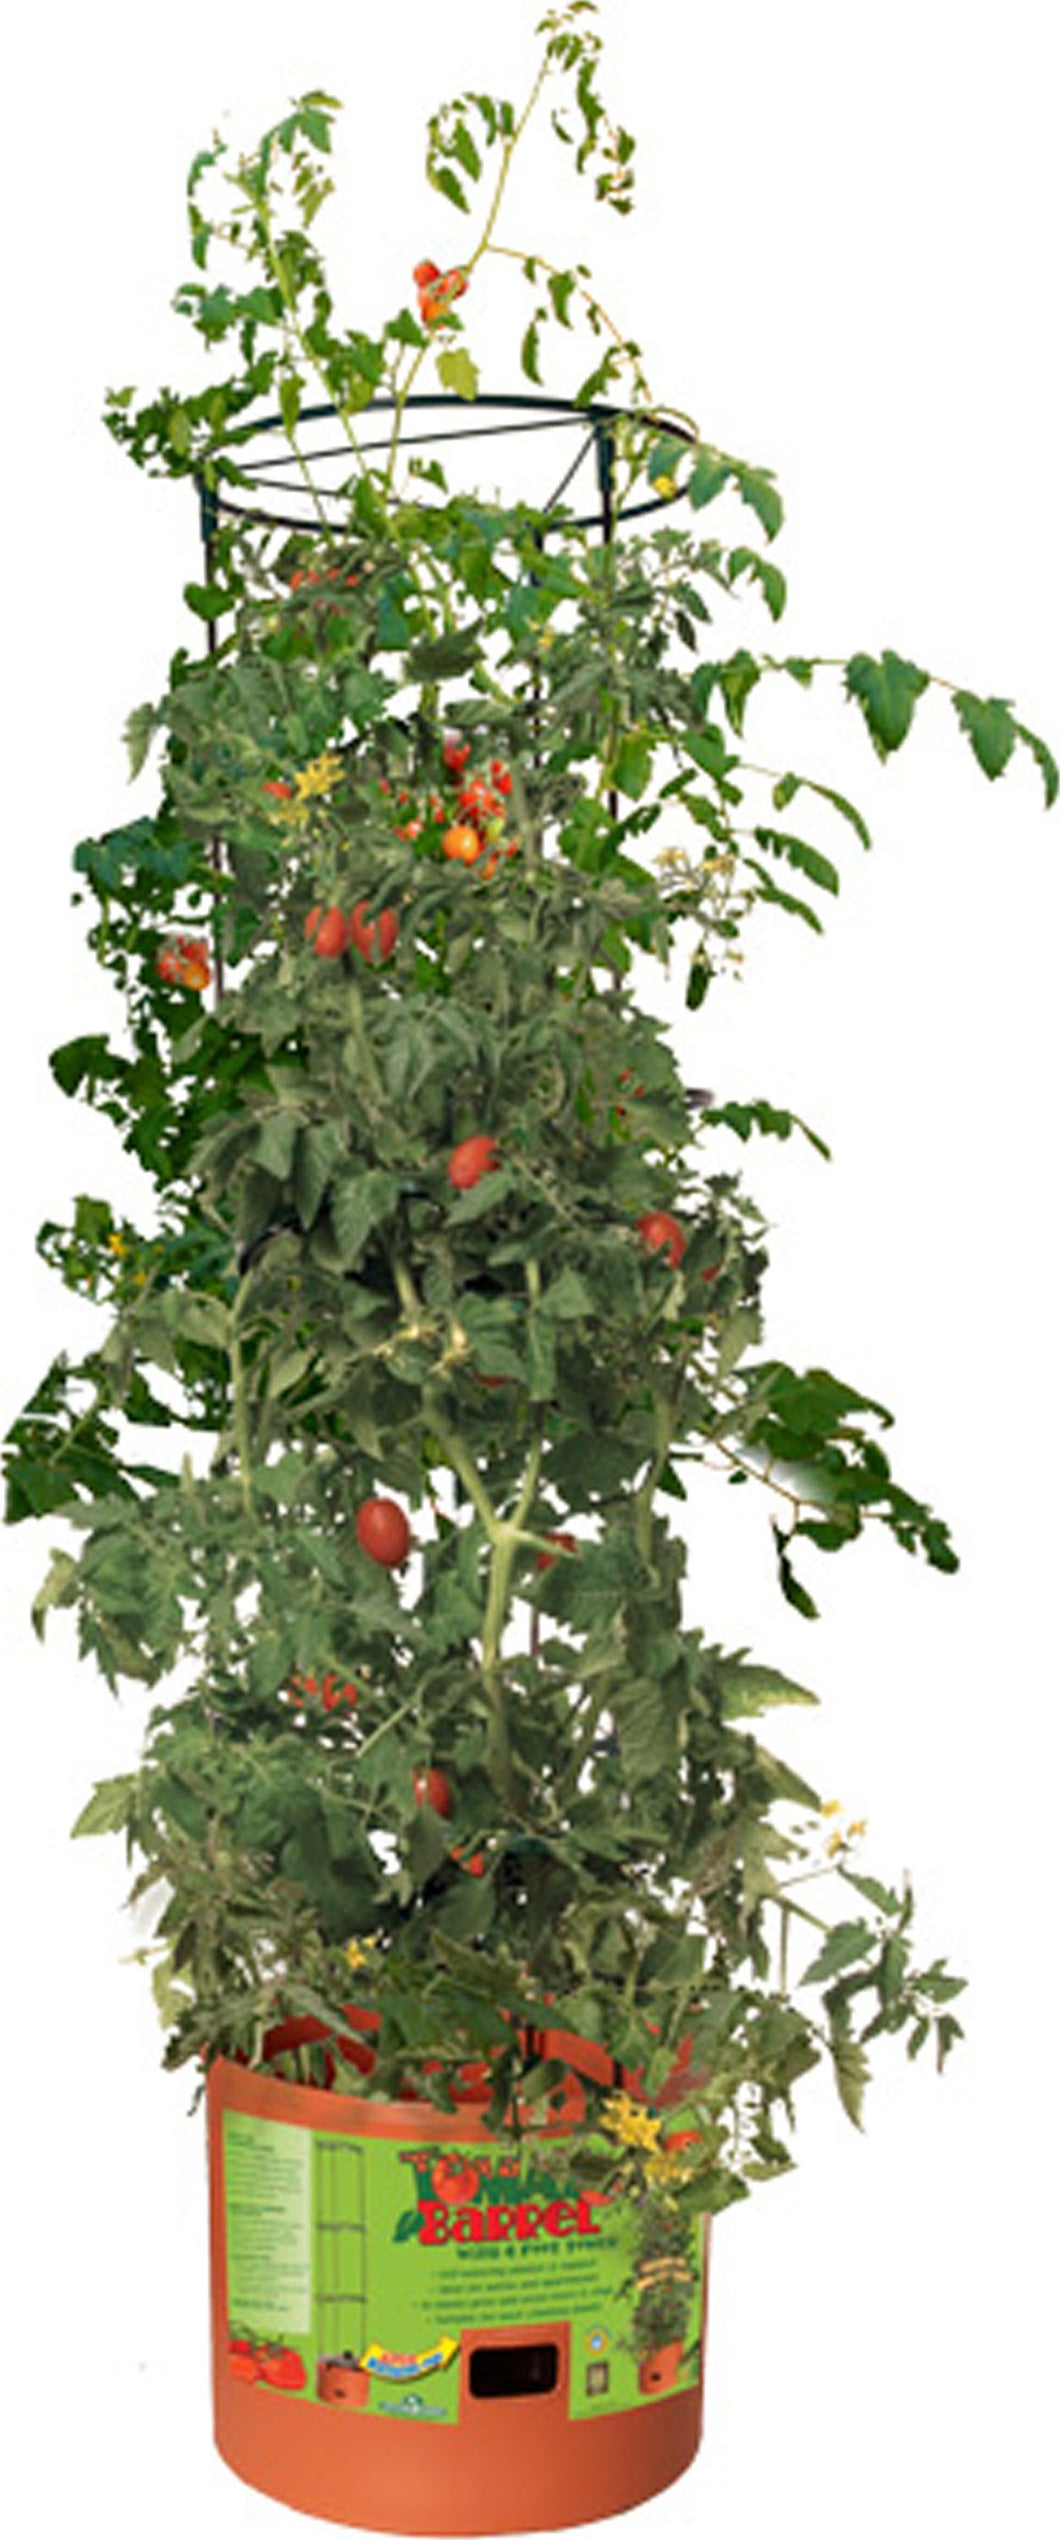 Tomato Barrel With Tower